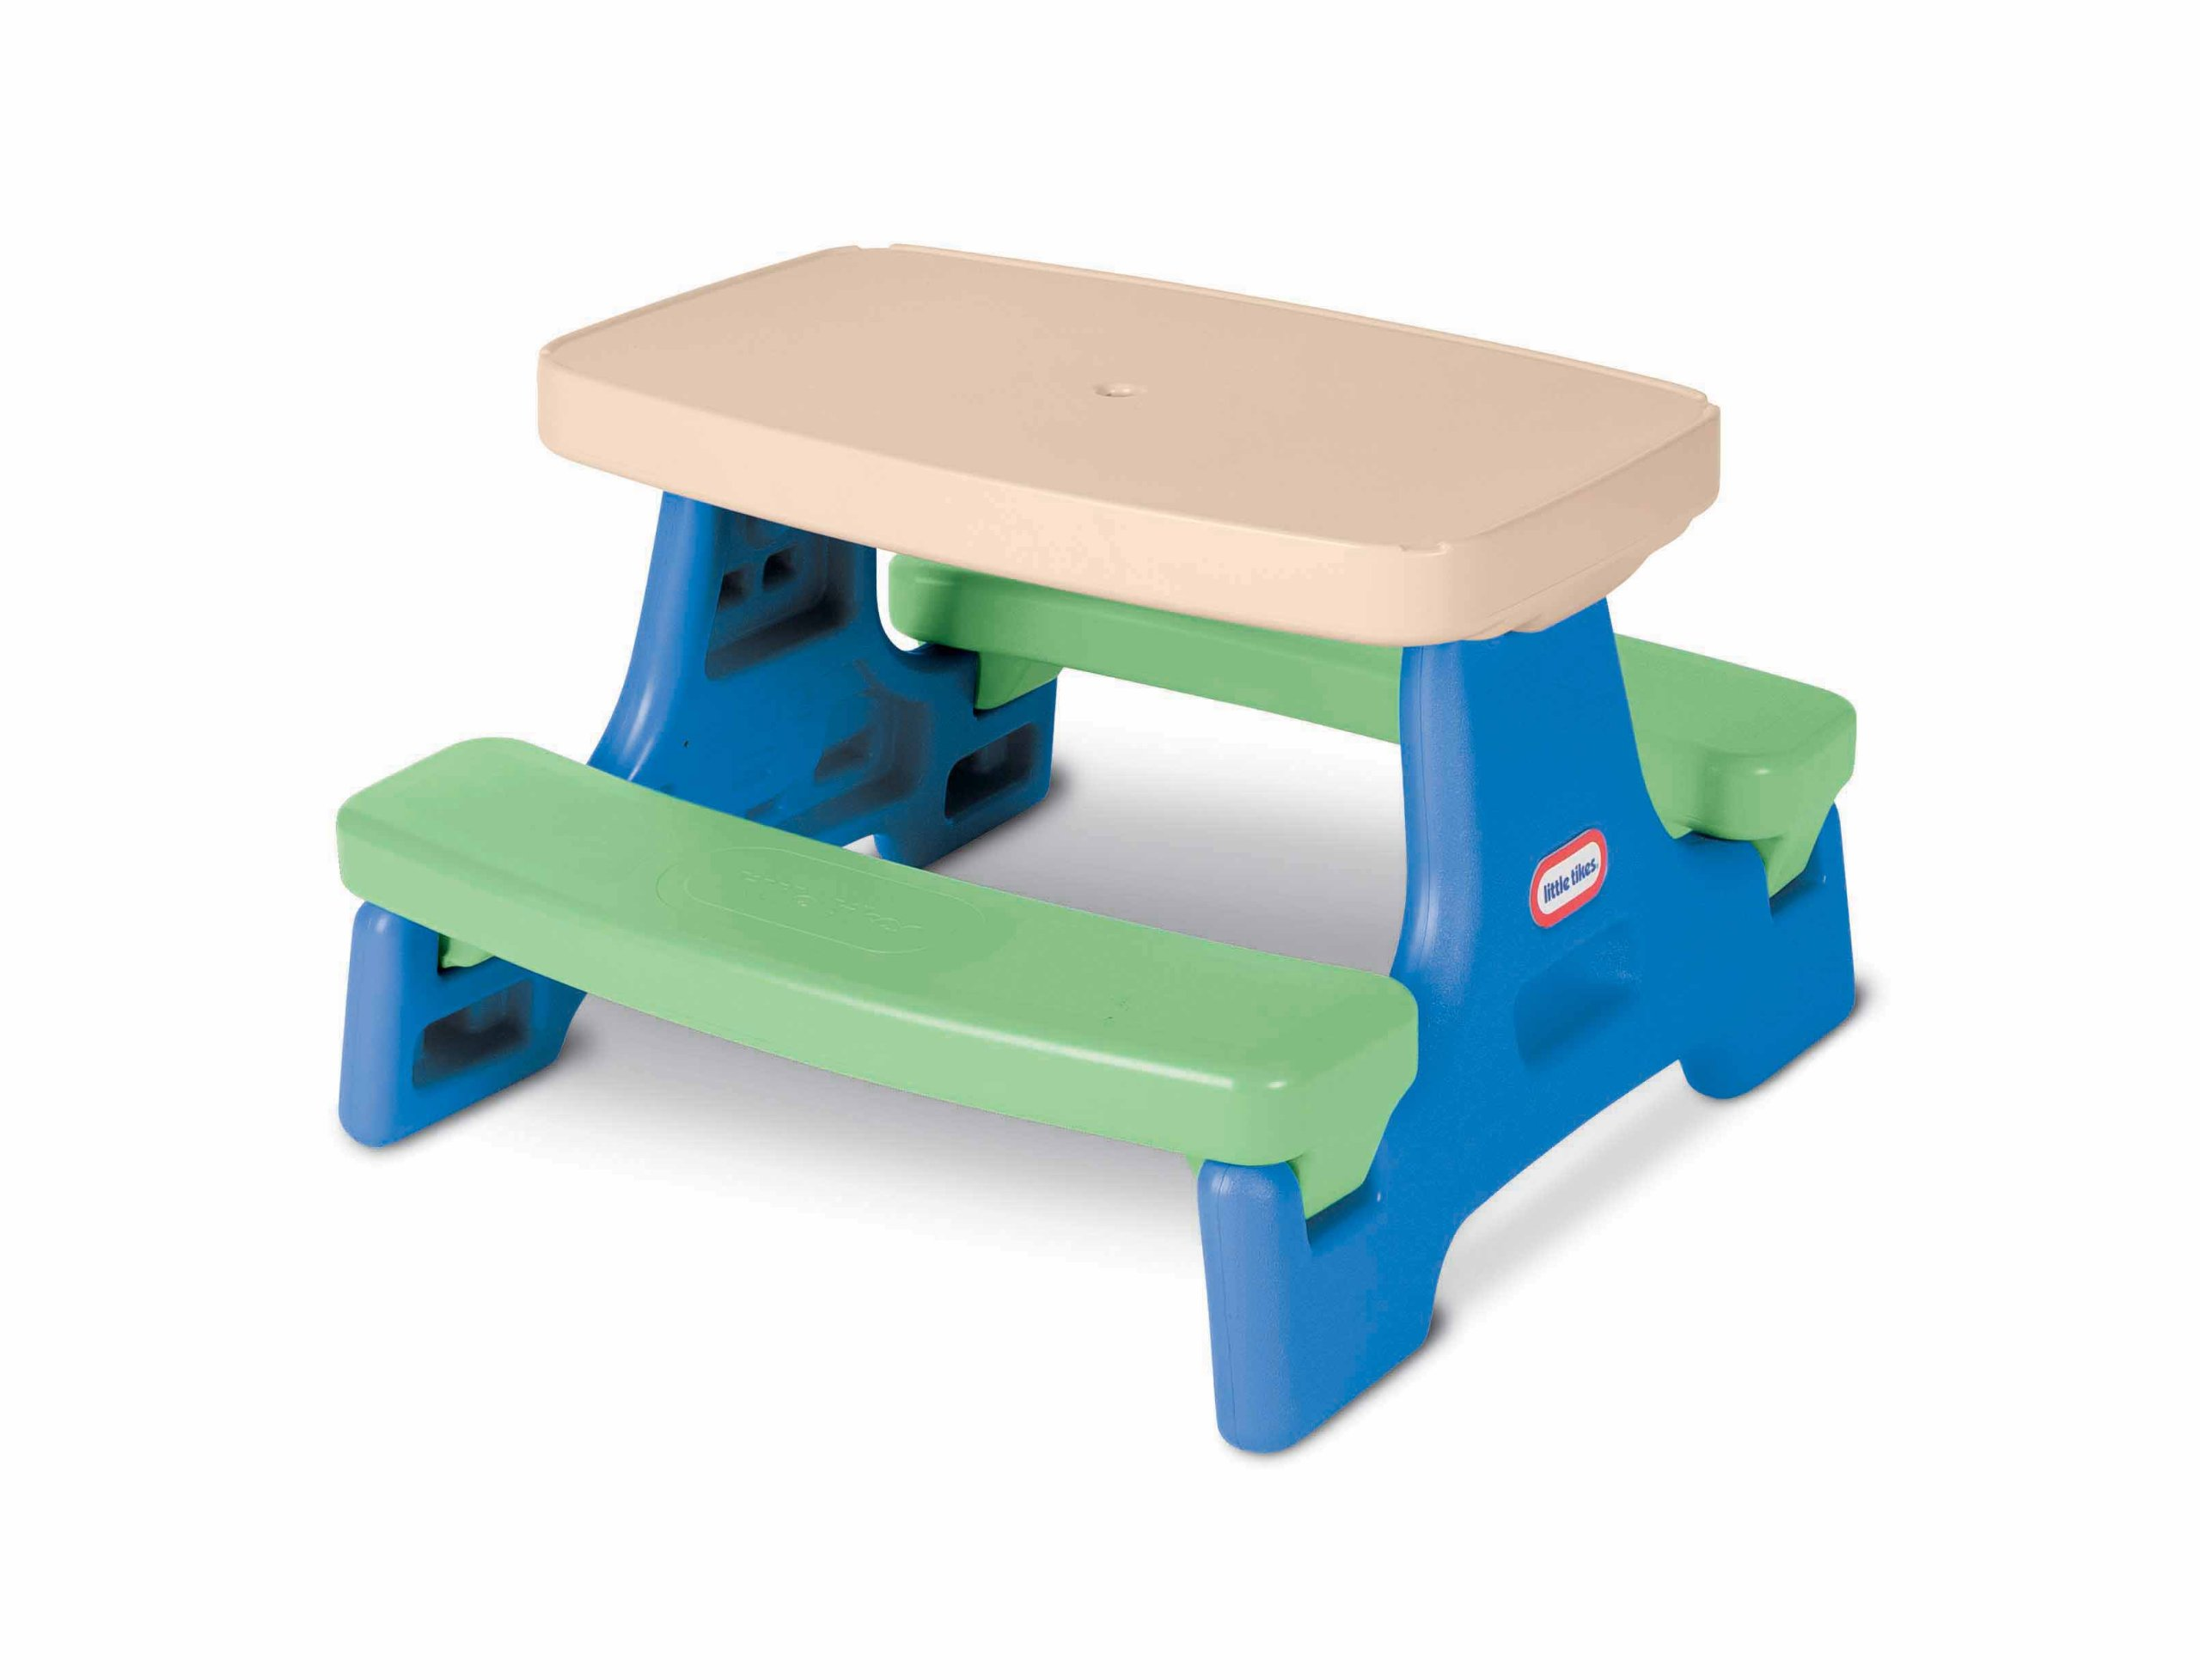 Little Tikes Easy Store Jr. Play Table – Amazon Exclusive